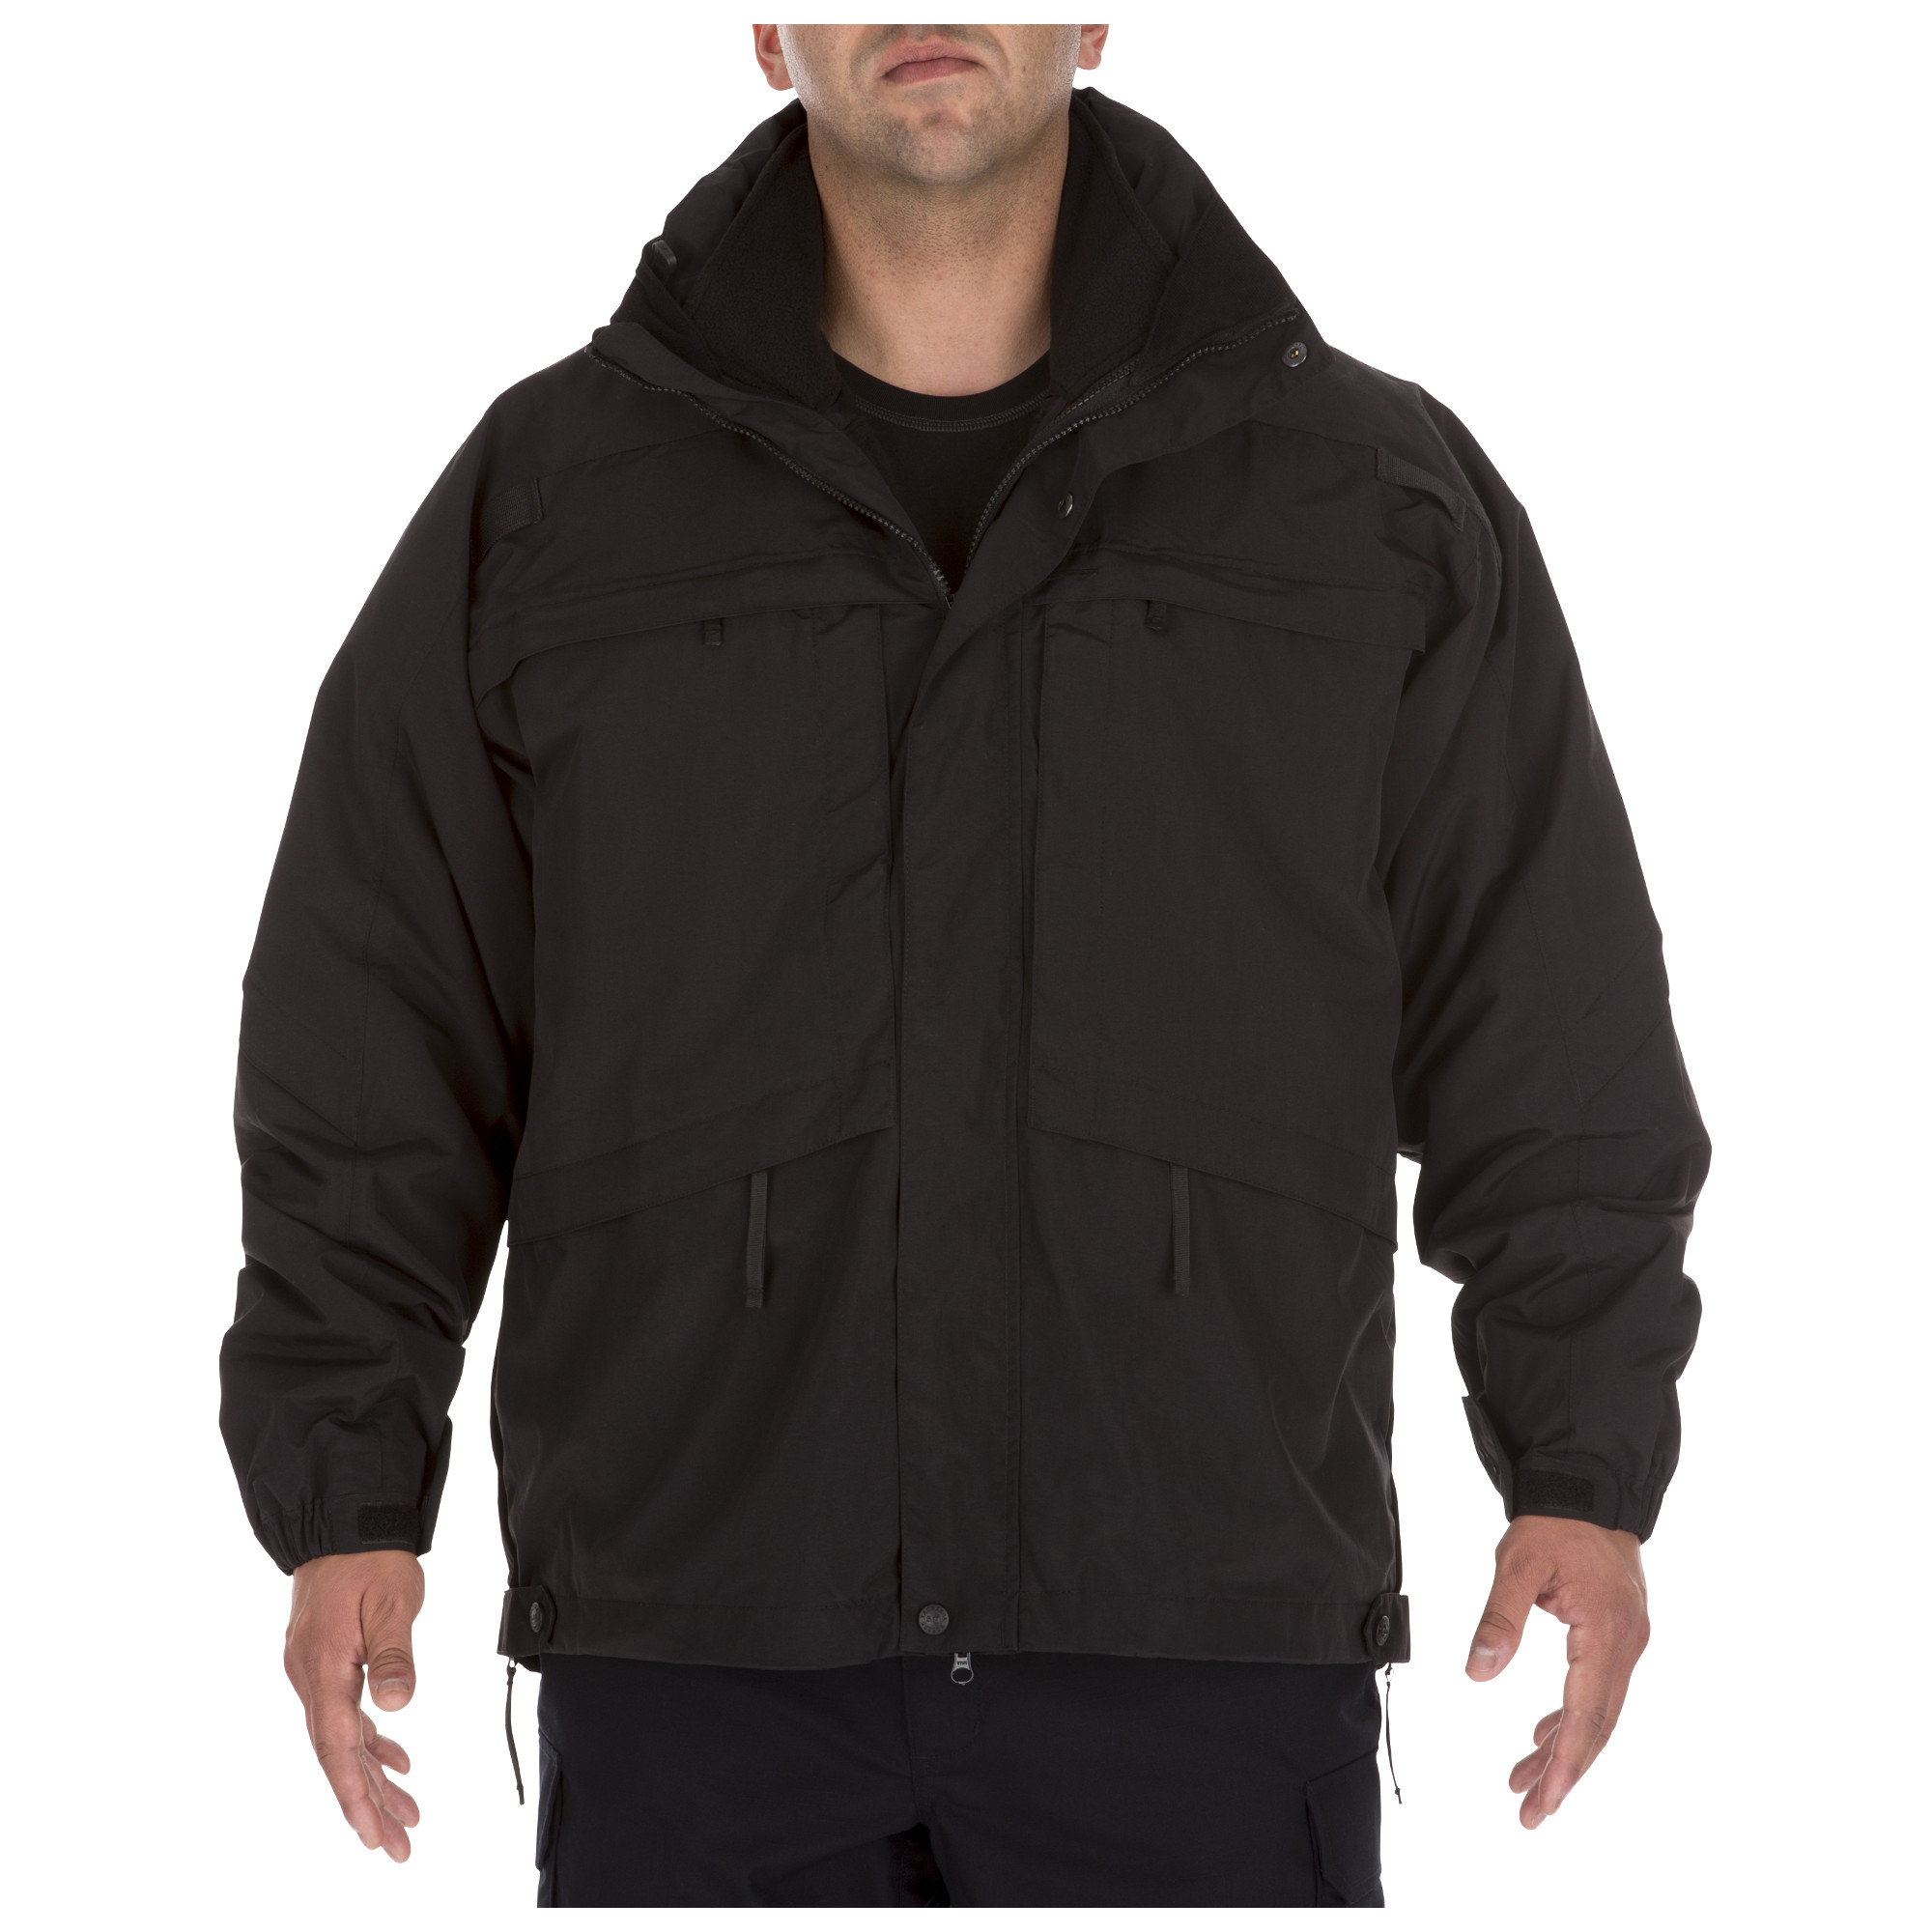 5.11 Tactical Men's 3-in-1 Parka Jacket™ (Black) thumbnail